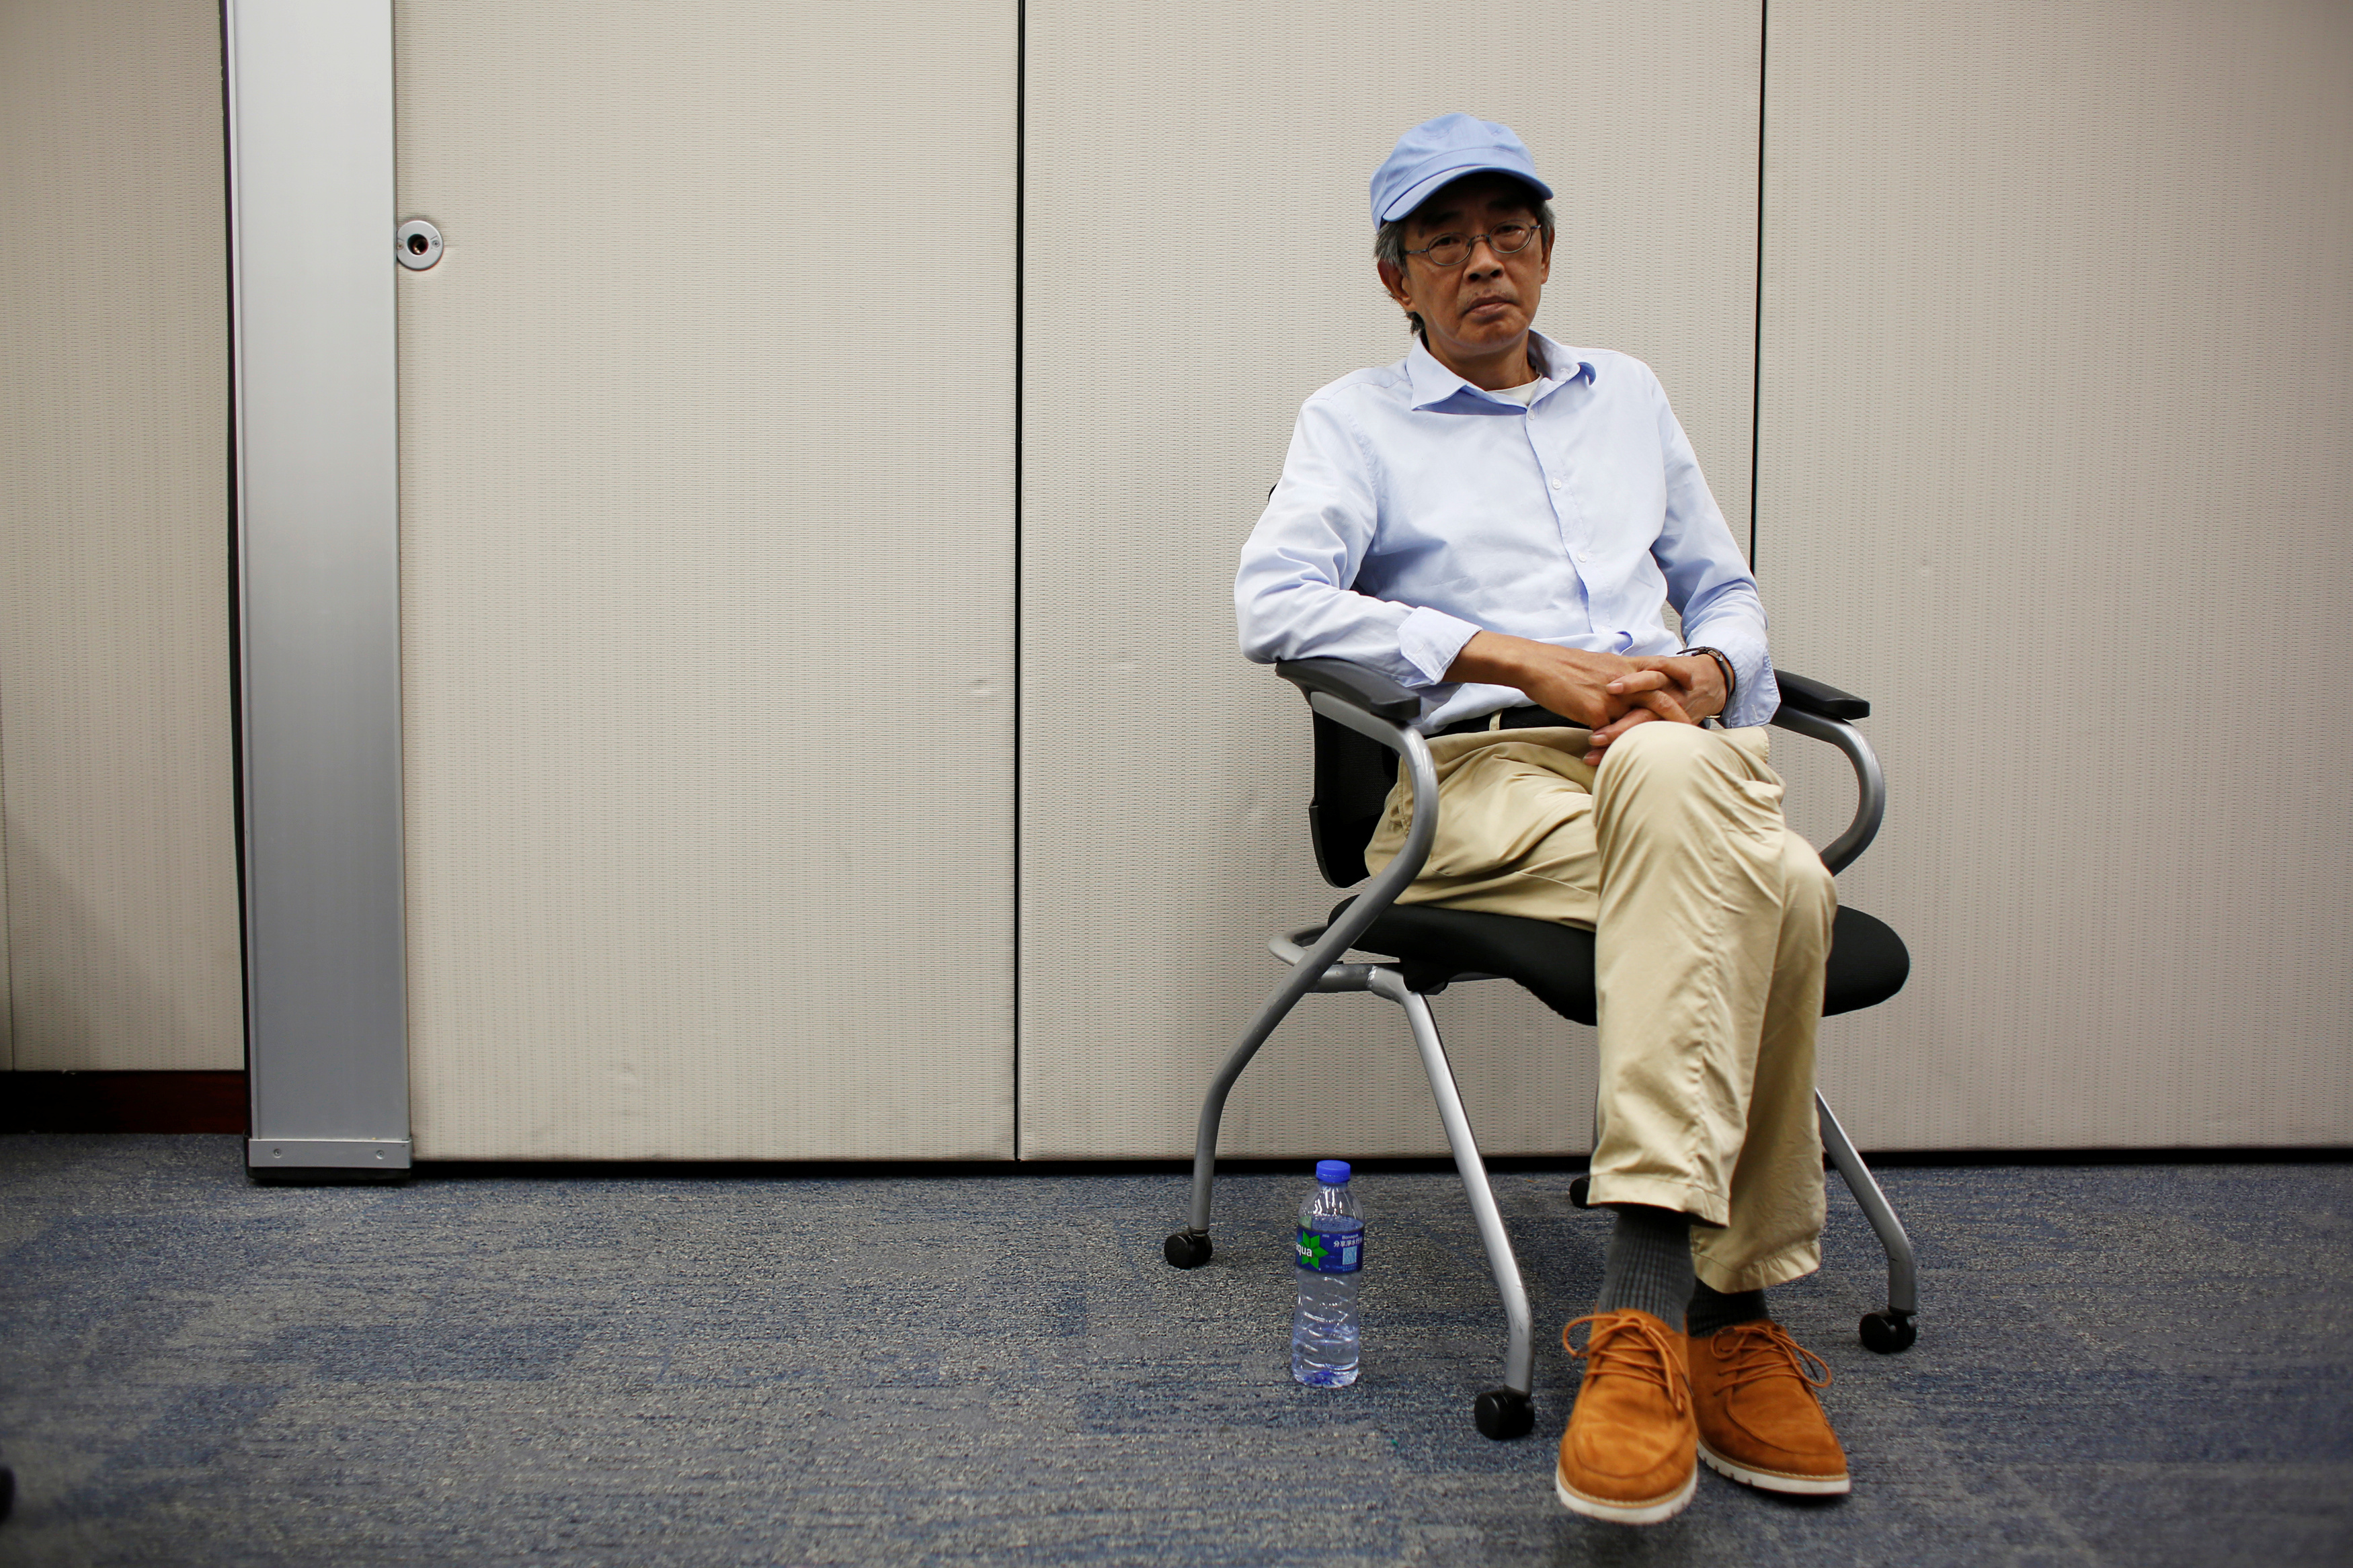 Bookseller Lam Wing-kee poses during an interview in Hong Kong, China June 19, 2016.